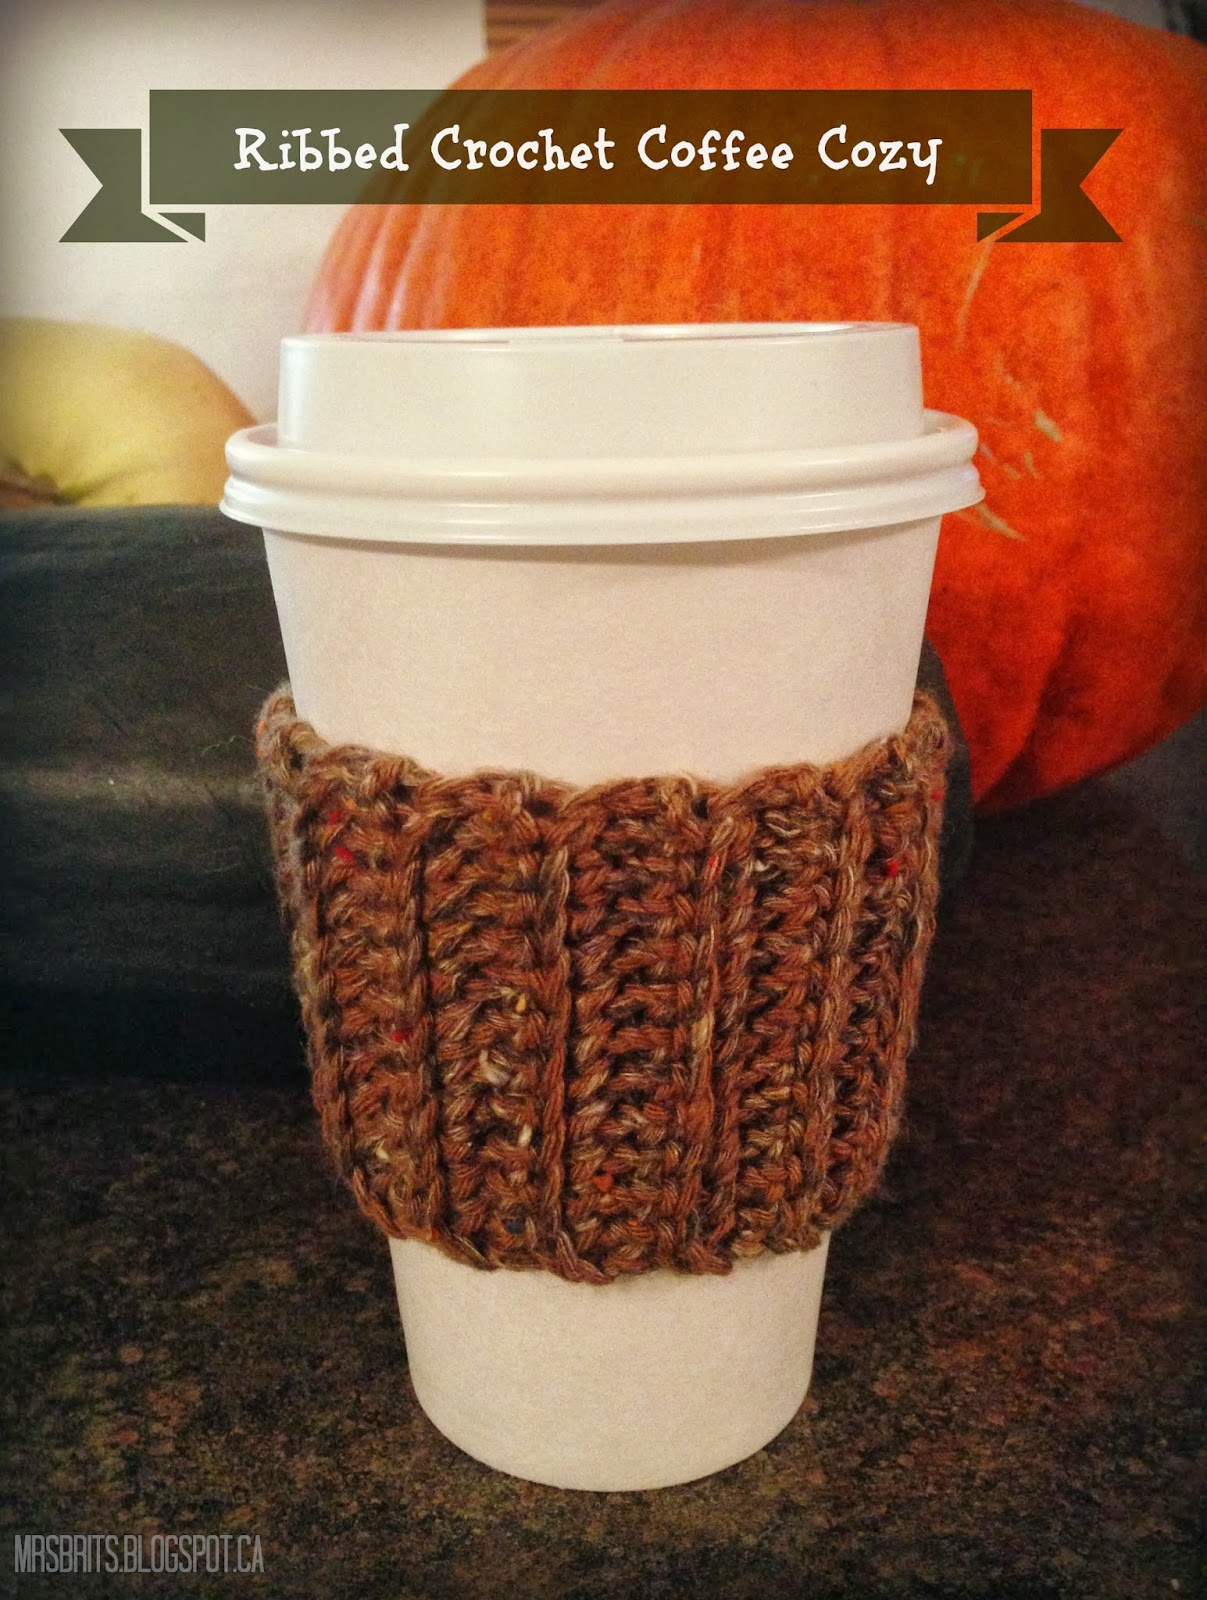 MrsBrits: Ribbed Coffee Cozy {Crochet Pattern}